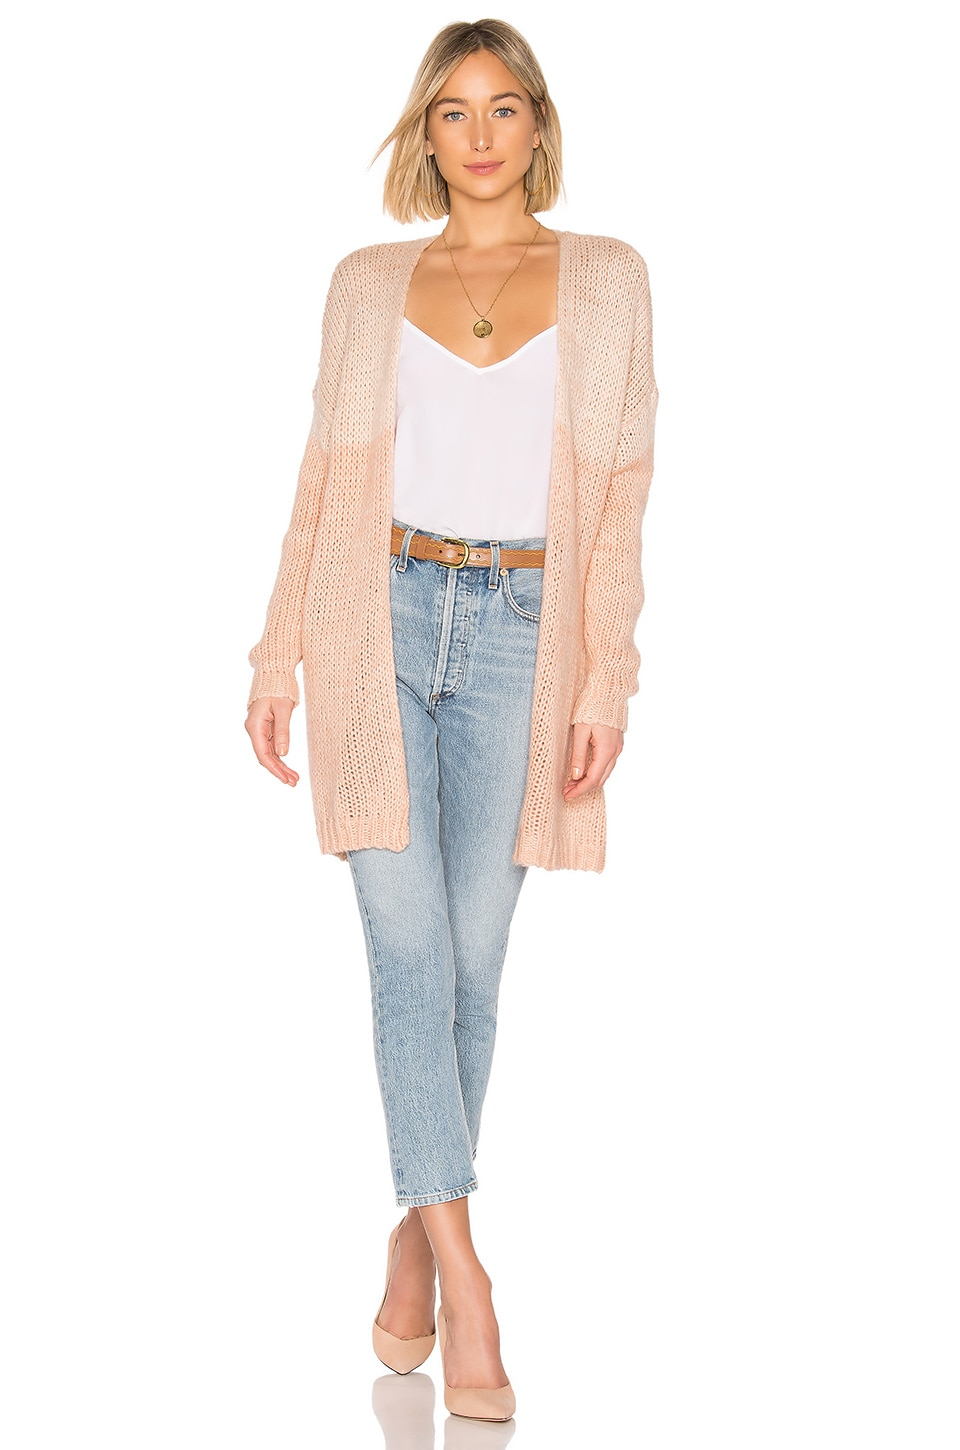 Tularosa Payson Duster in Blush Pinks